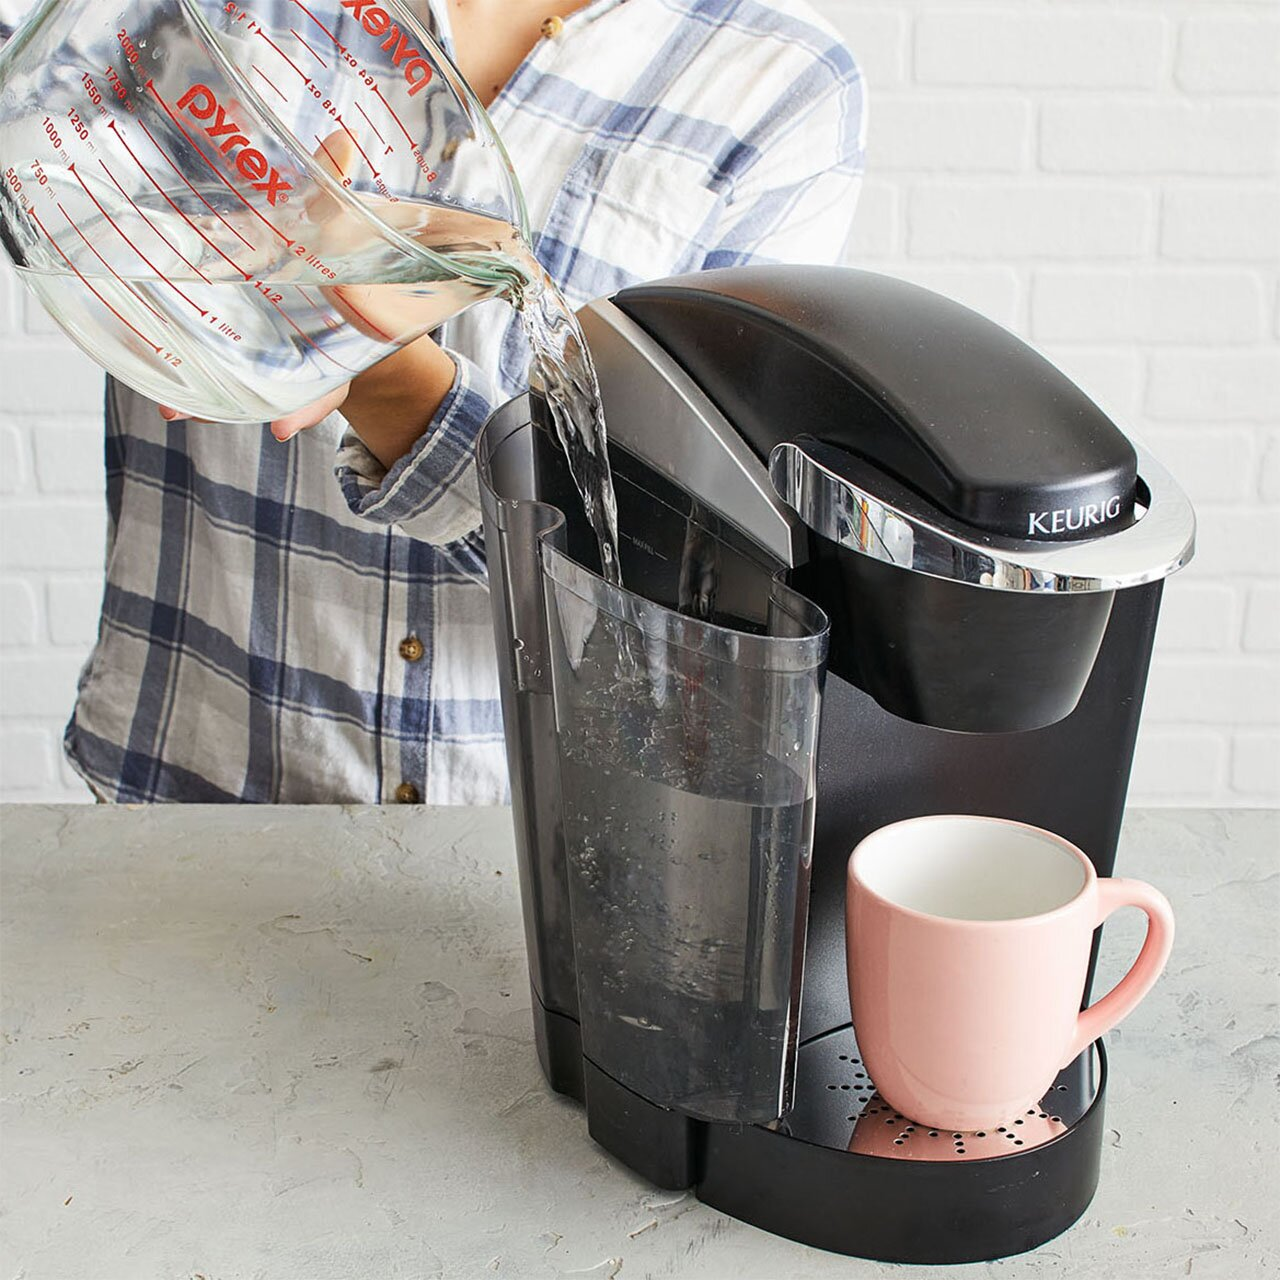 woman wearing plaid pouring water from pyrex measuring glass into keurig